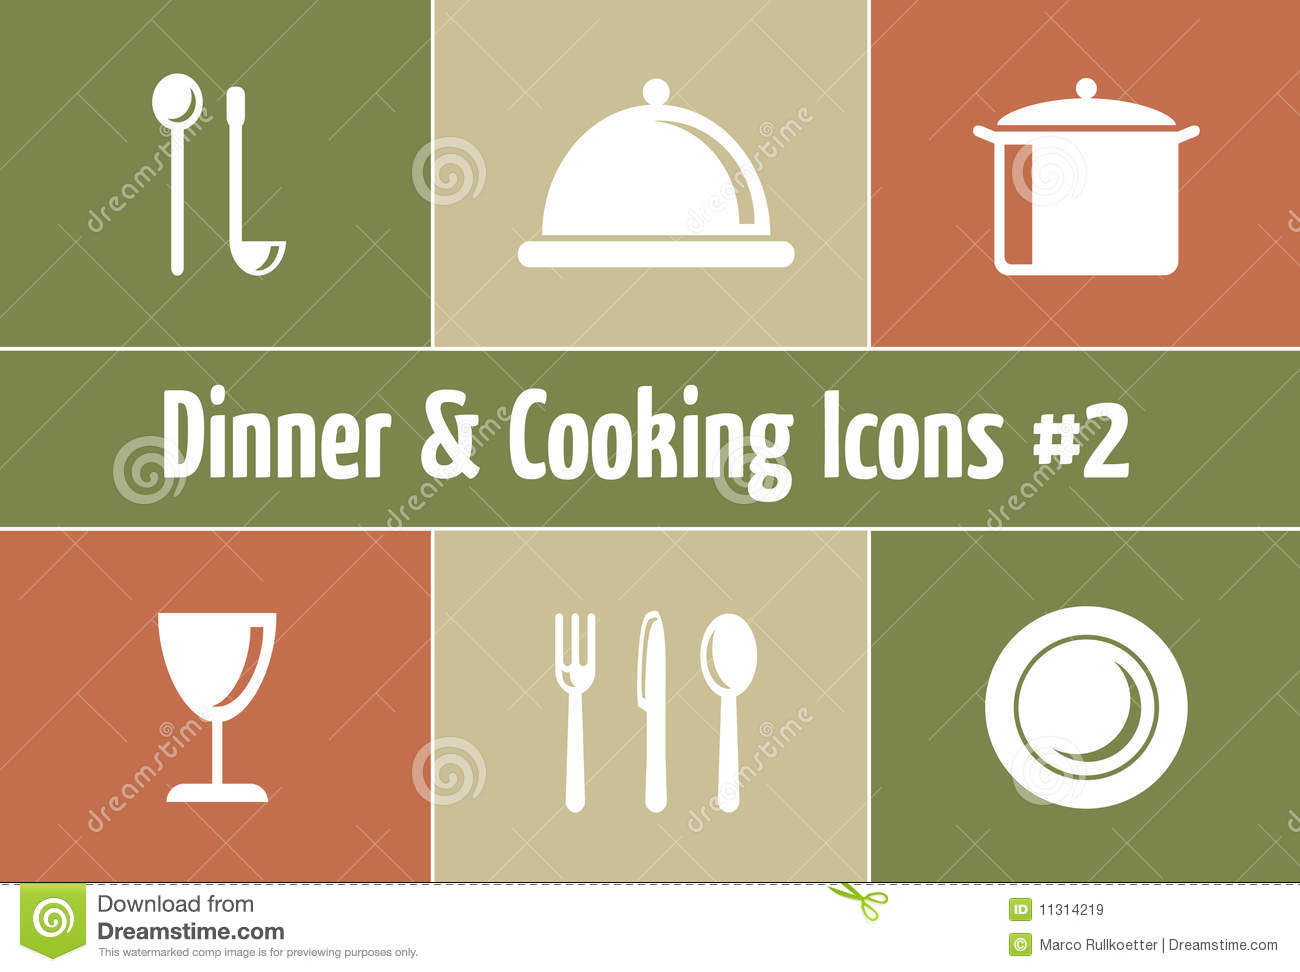 For restaurant pictures graphics illustrations clipart photos - Catering Restaurant